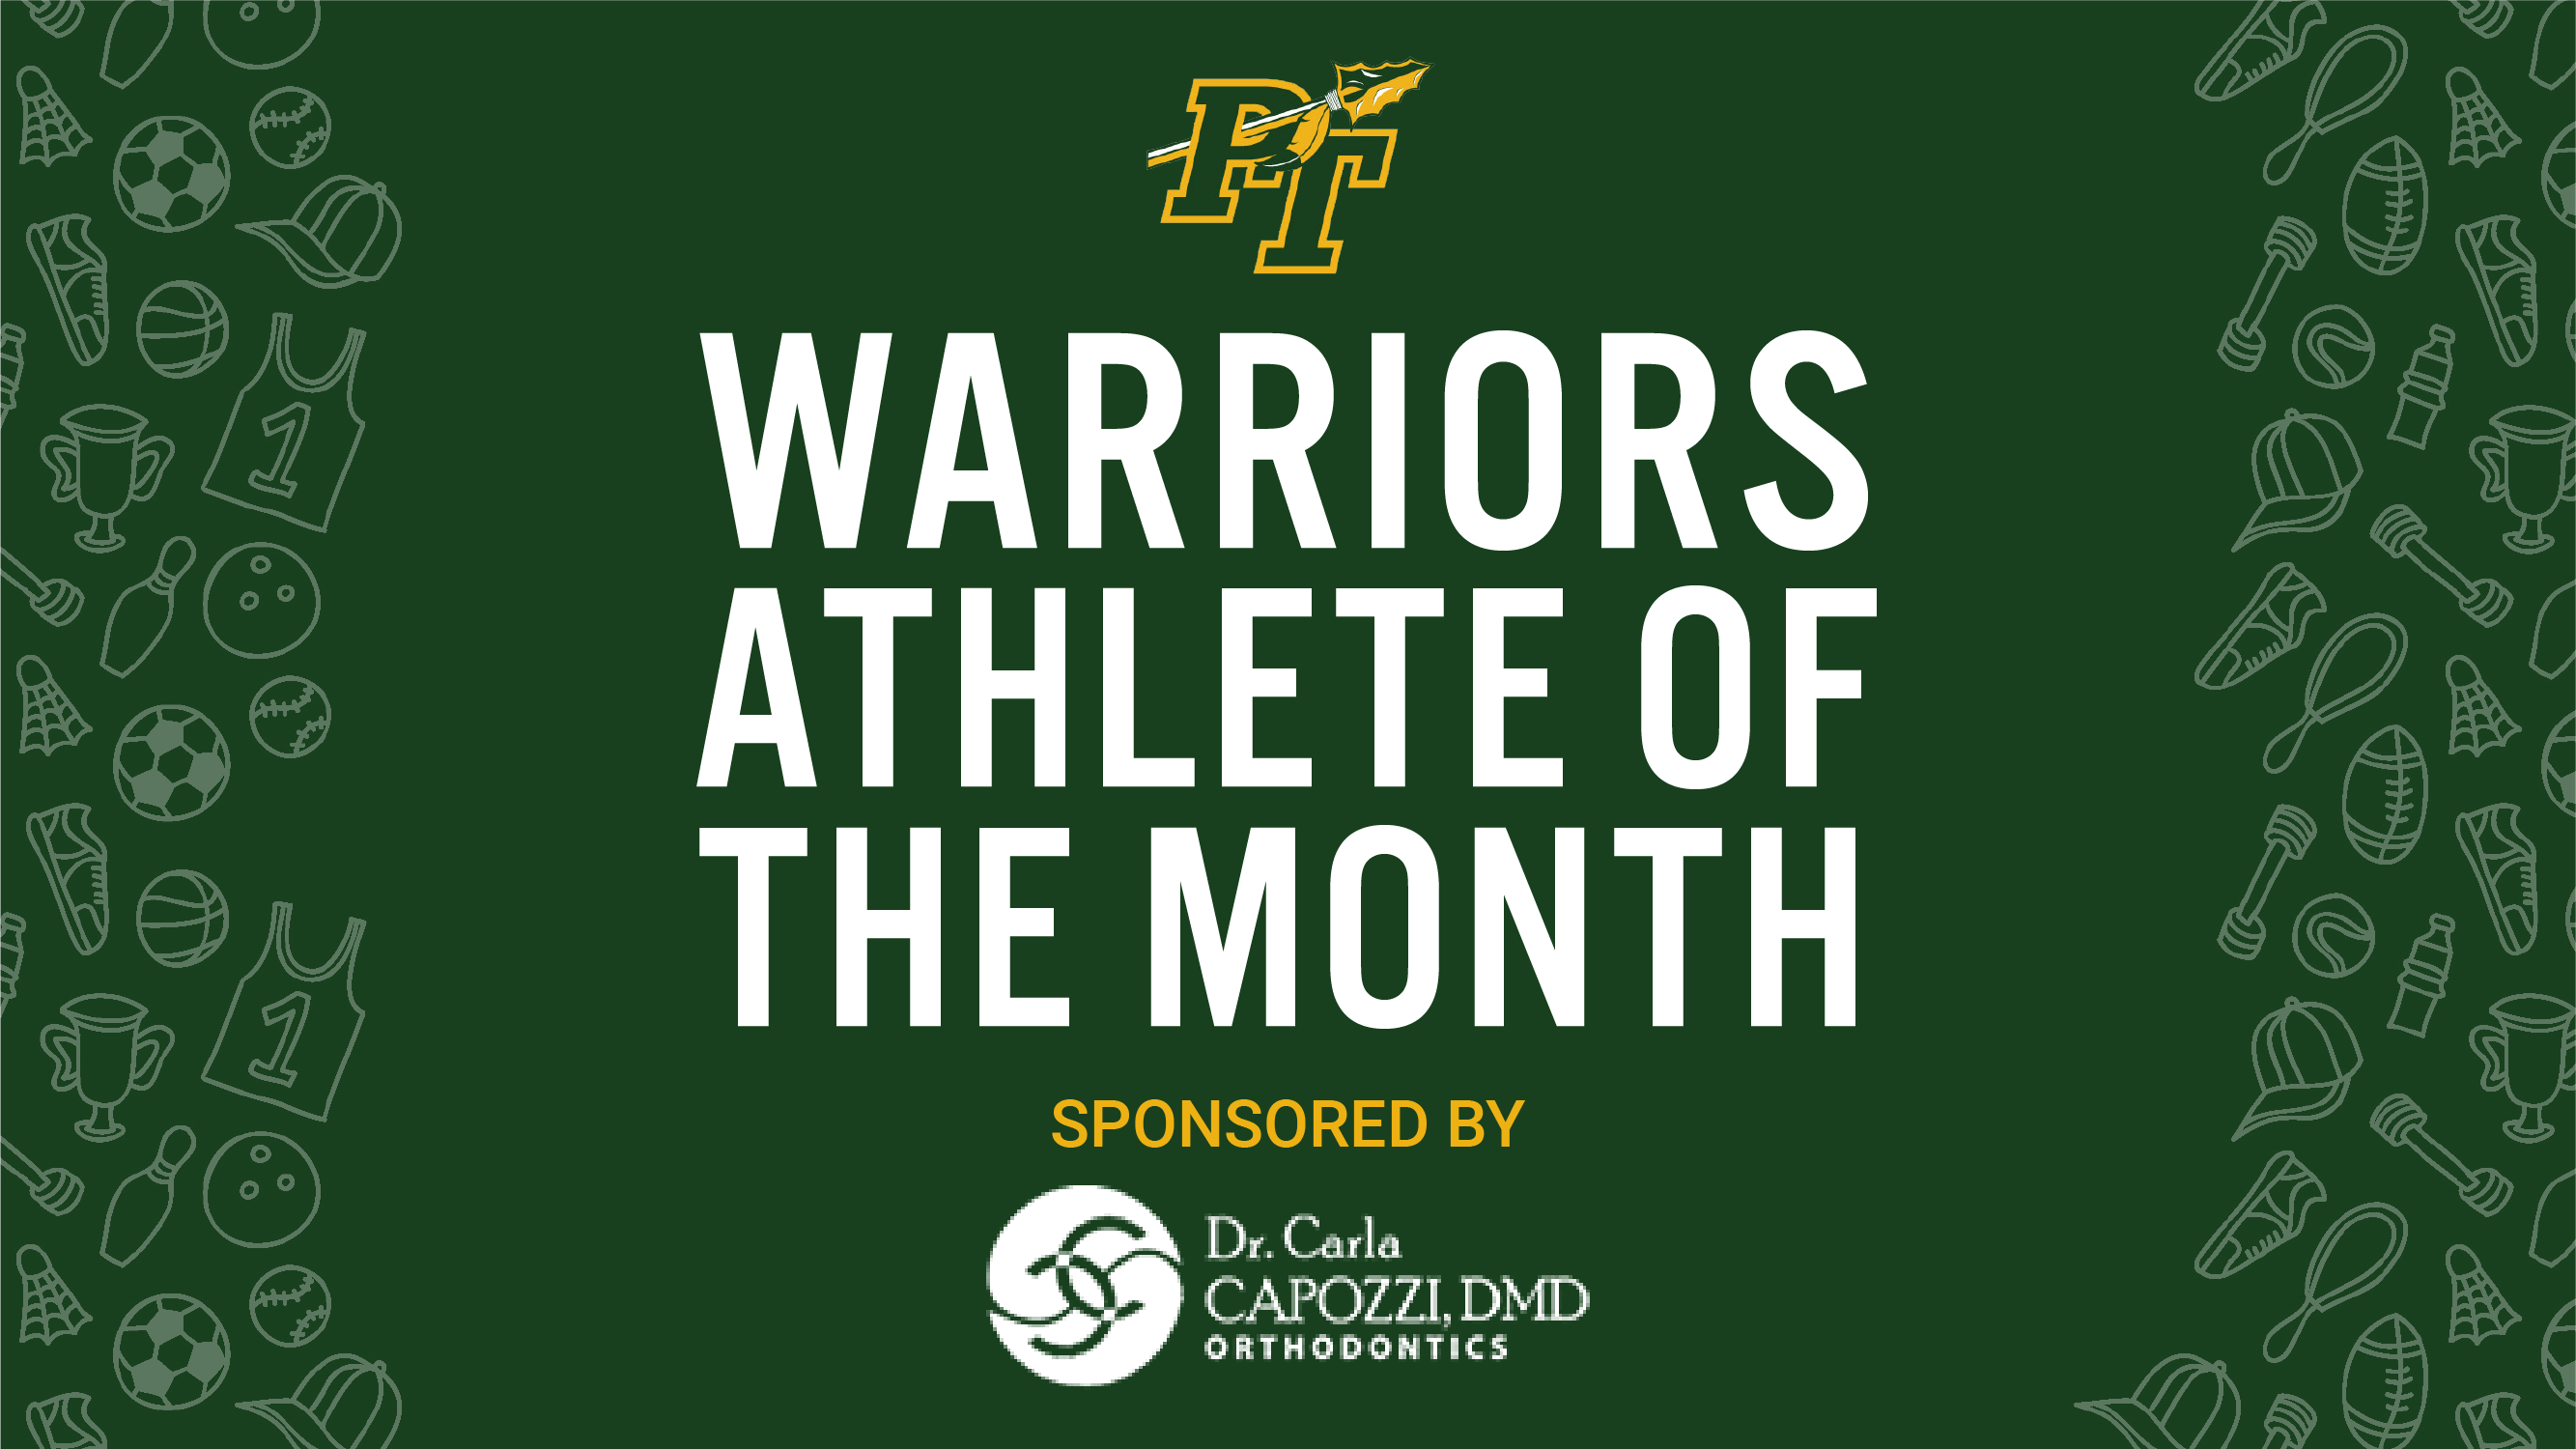 Cast your vote for November's Athlete of the Month! Sponsored by Dr.Carla Capozzi, DMD Orthodontics